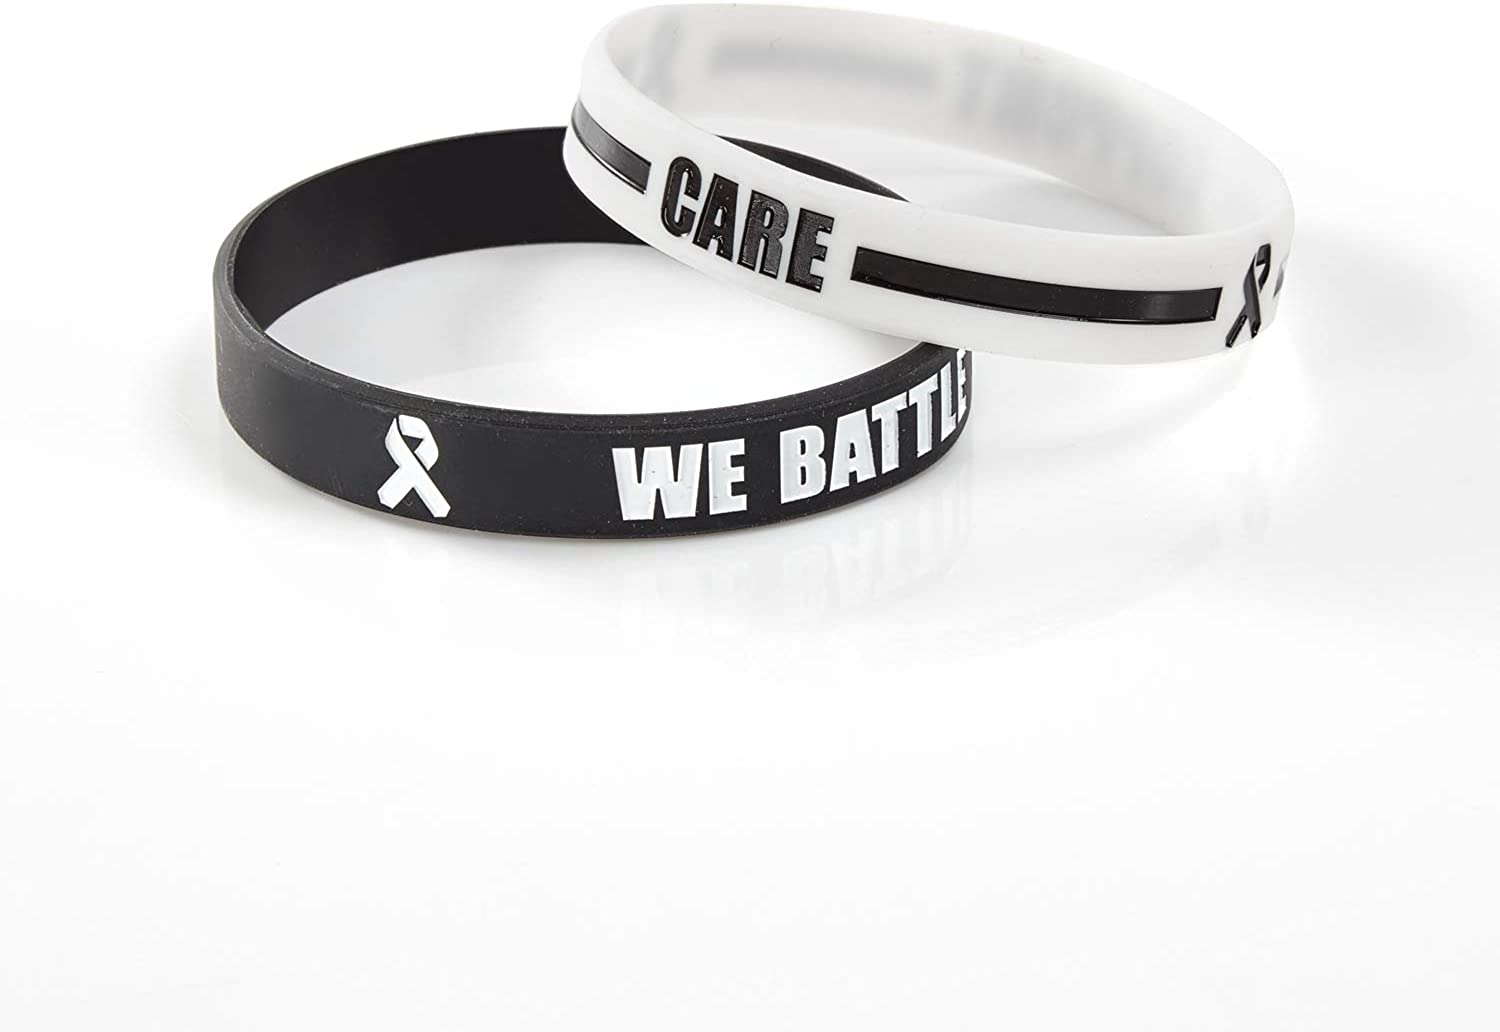 BRANDWINLITE Silicone Cancer & Cause Awareness Bracelets with Saying We Battle Together, Ribbon Icon with Saying Care and Support,Gift for Patients, ...